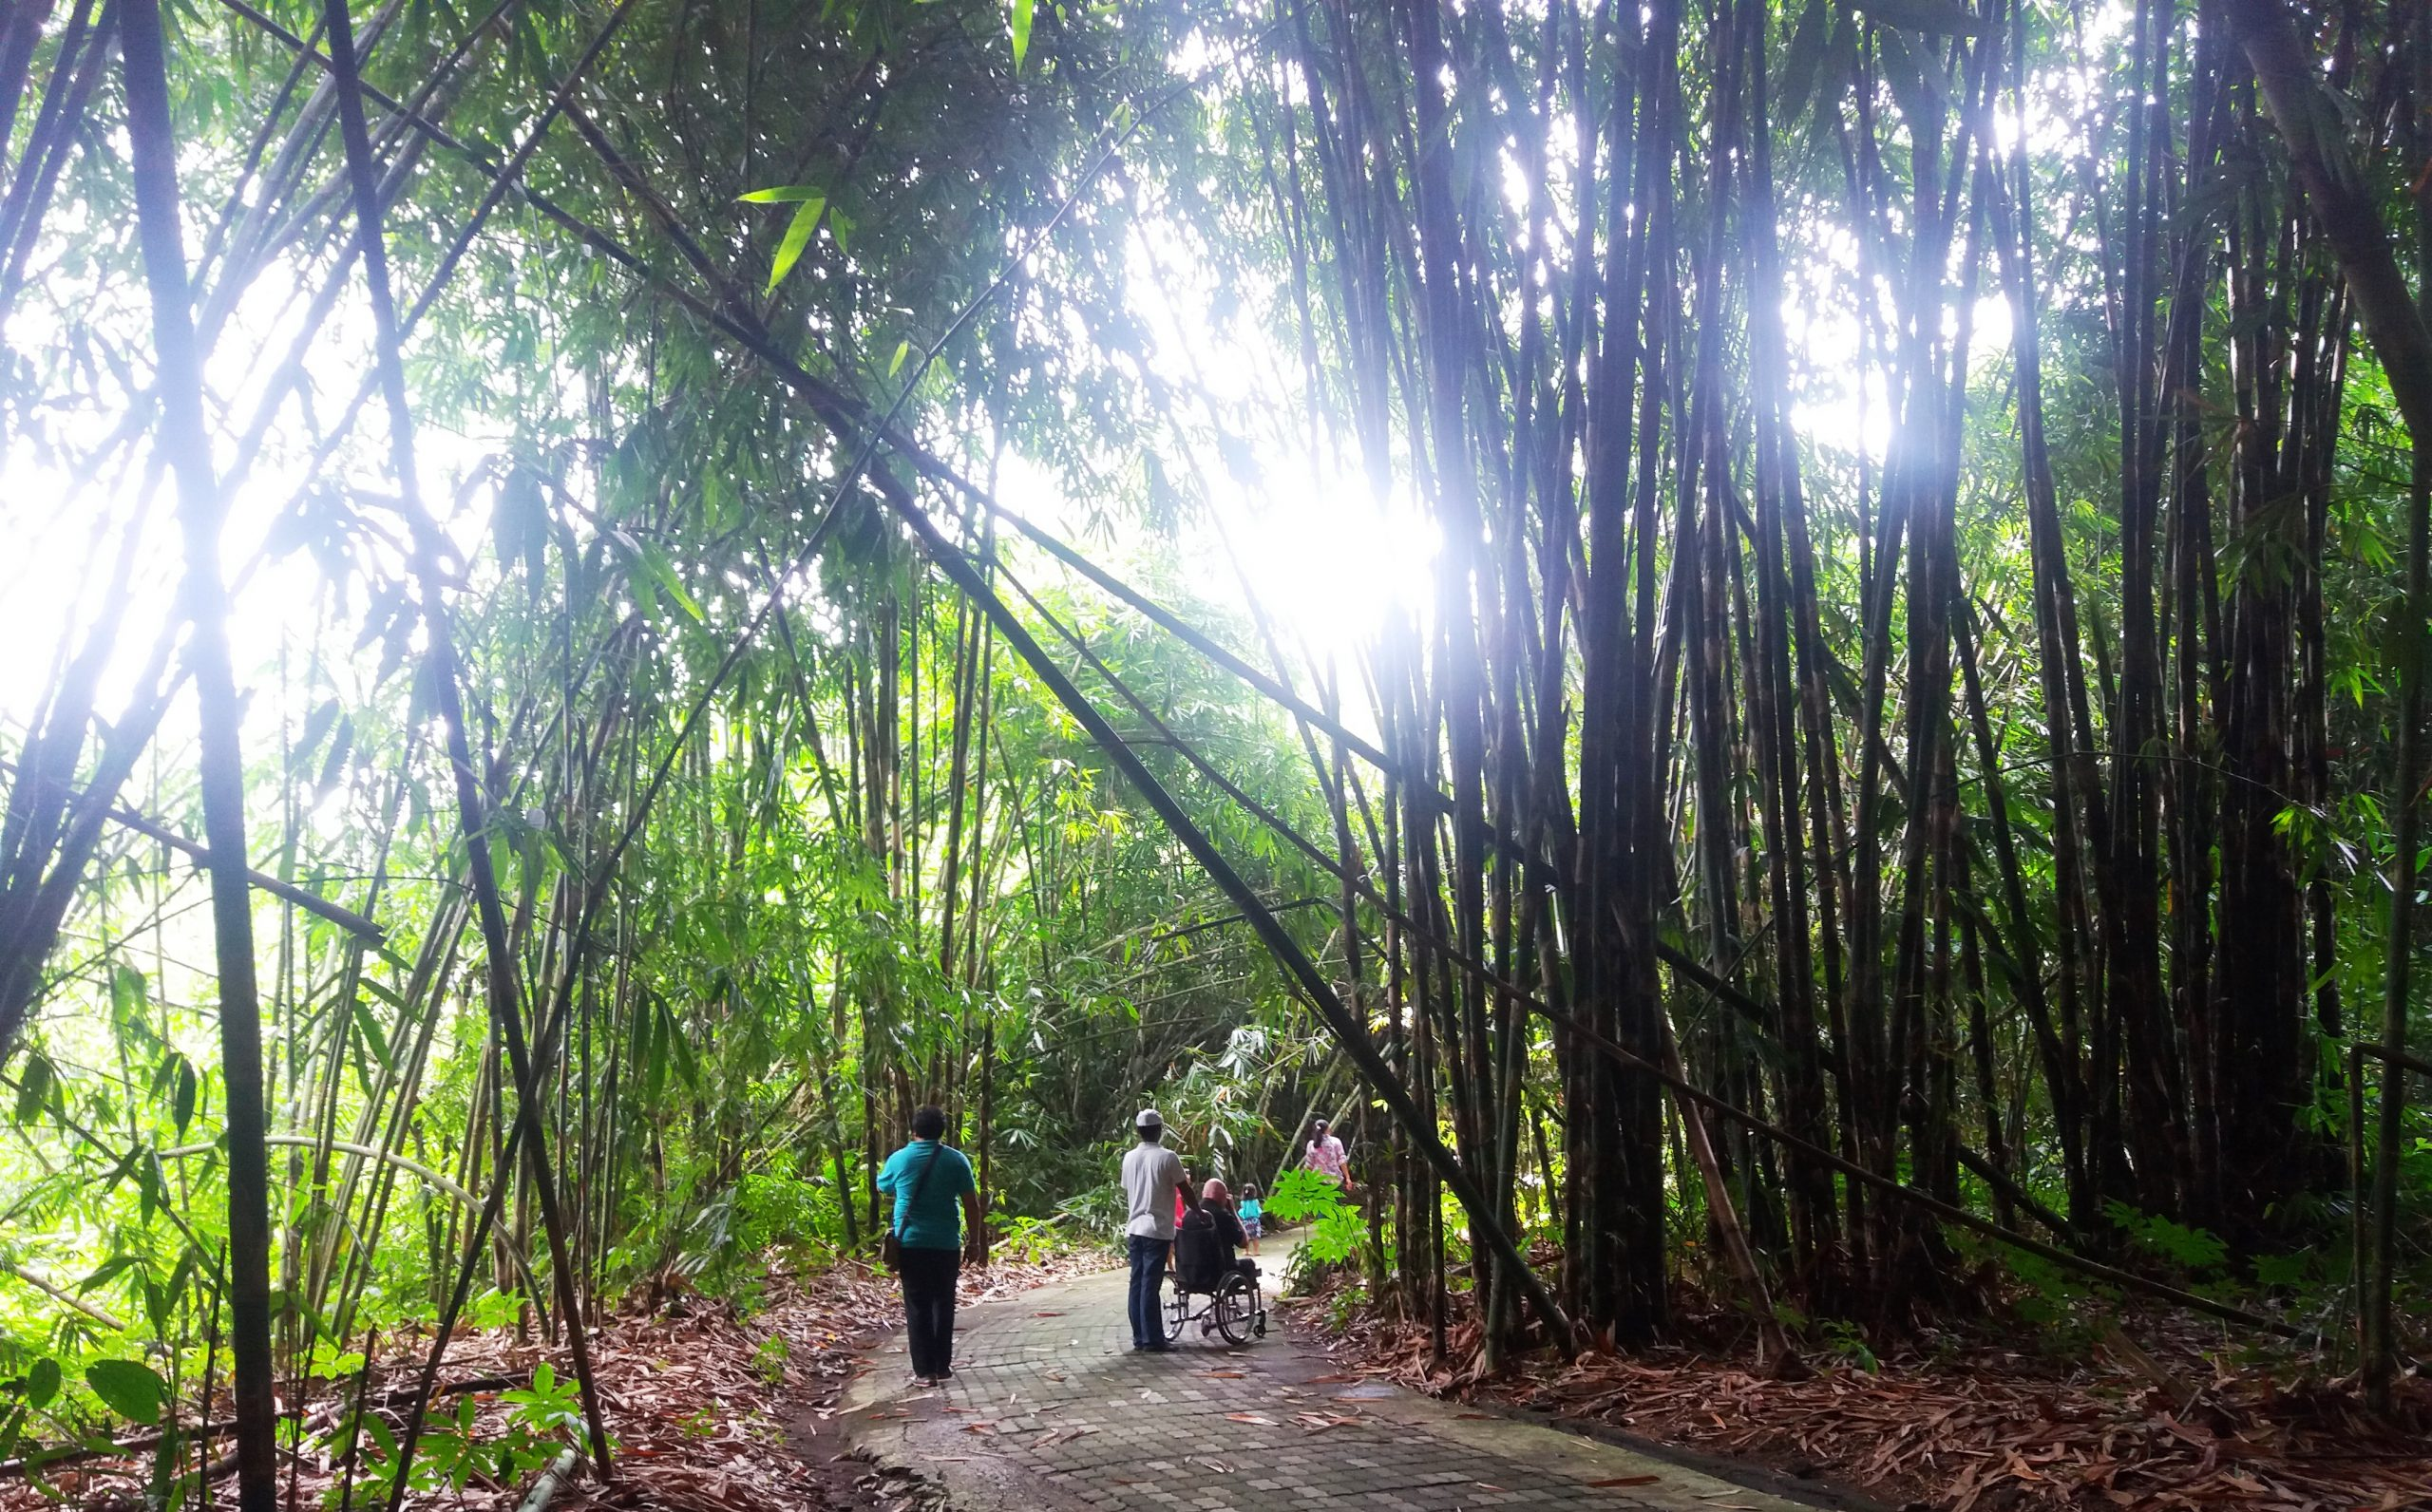 Acessible Bamboo Forest in Bali